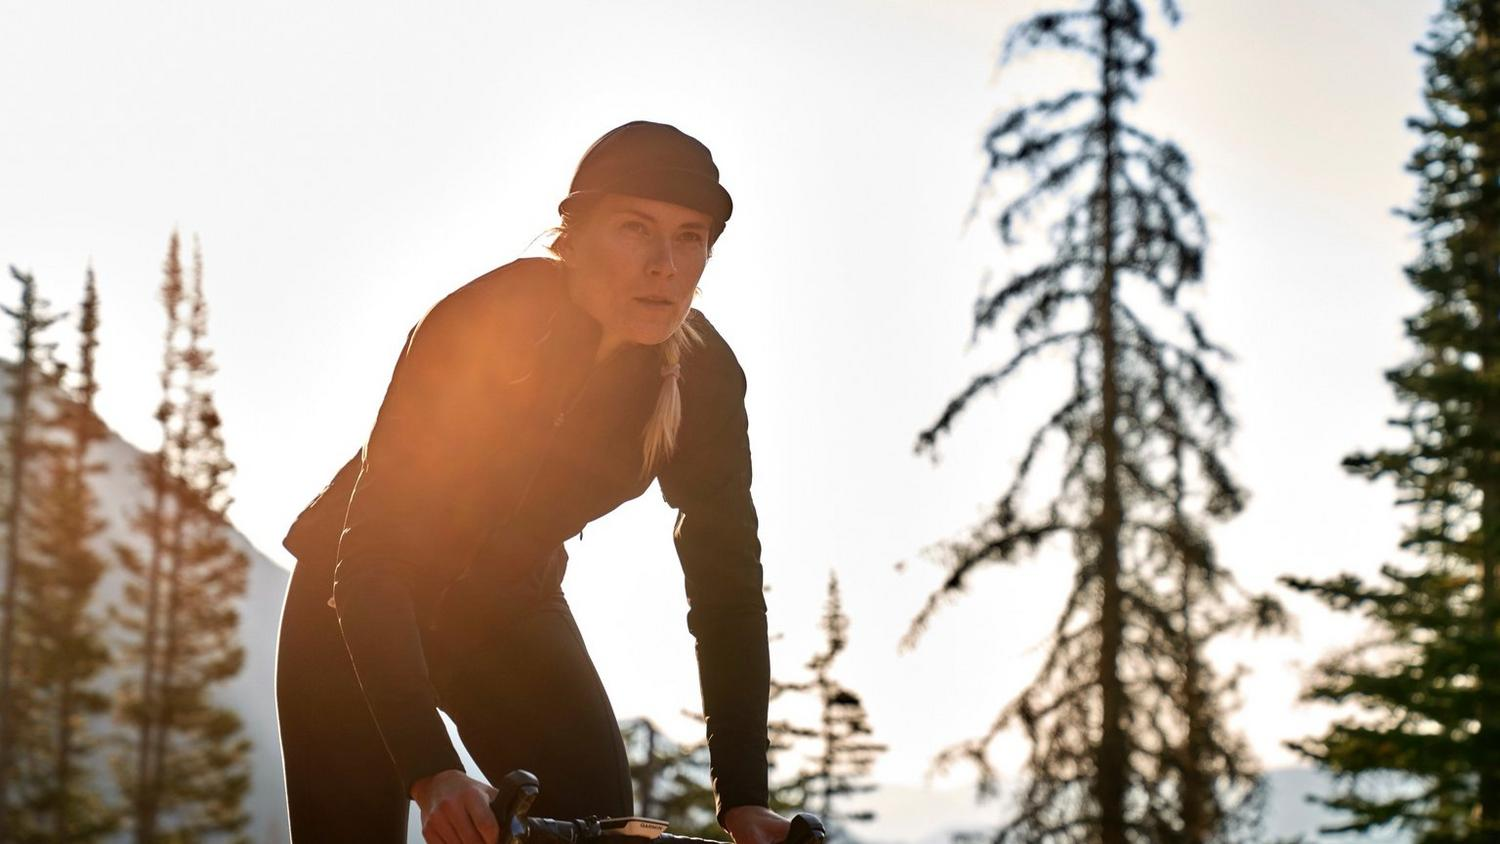 As the temperature falls and the light fades, it's harder to get out and ride. Led by our legendary merino jerseys and padded tights, the Classic collection takes on the challenges of autumn and winter riding.